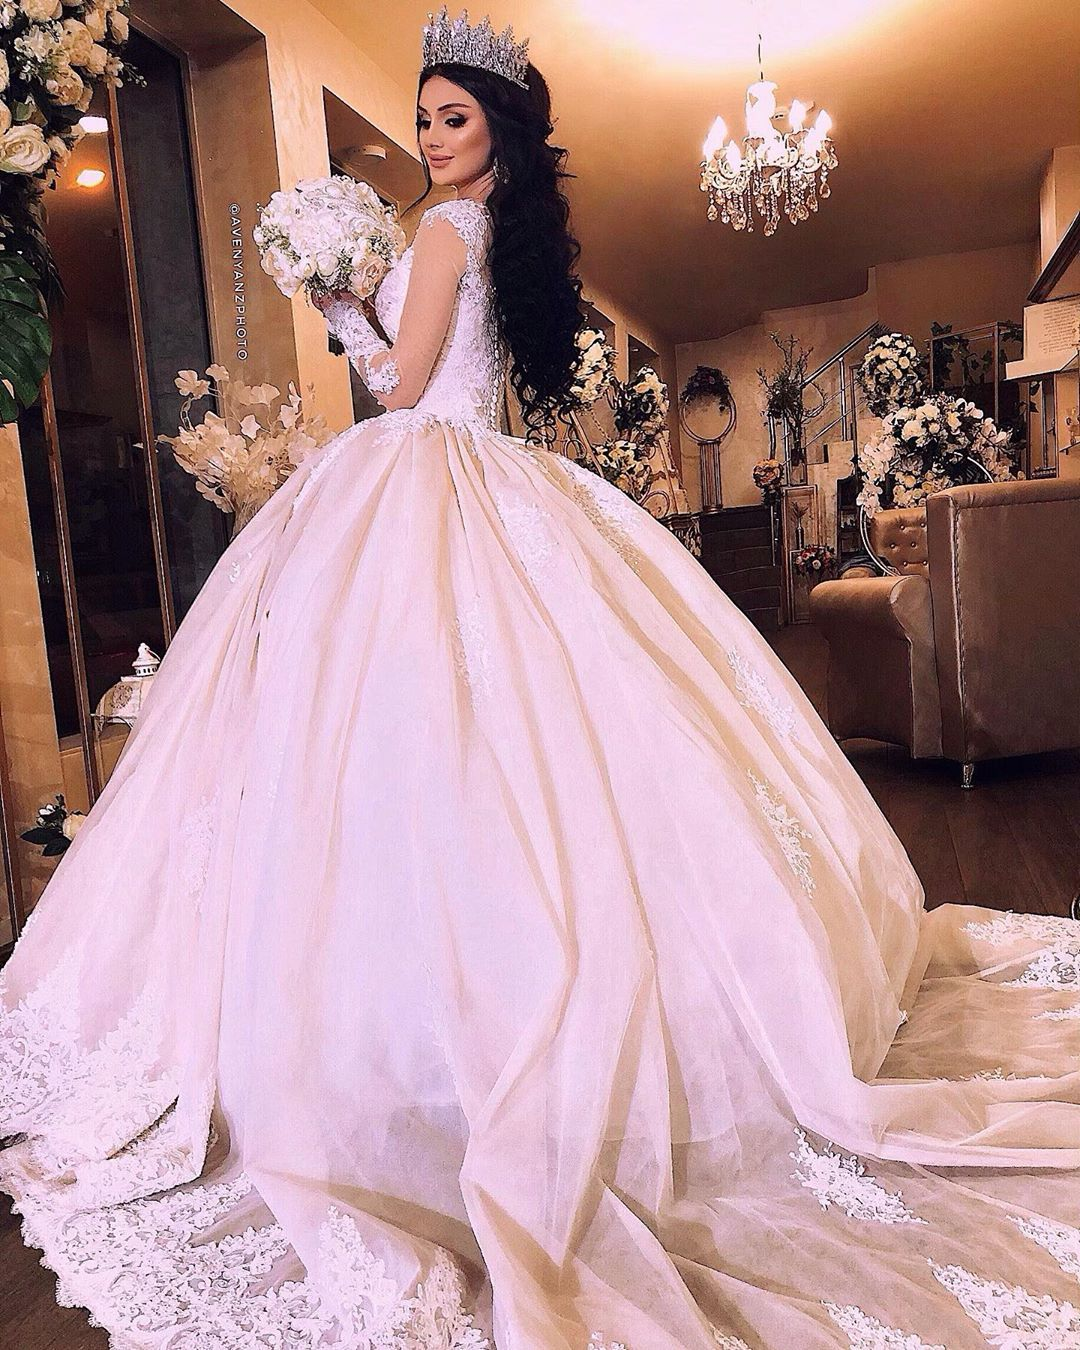 Pin By Lydia Moran On Dress Wedding Queen Dress Disney Princess Dresses Weeding Dress